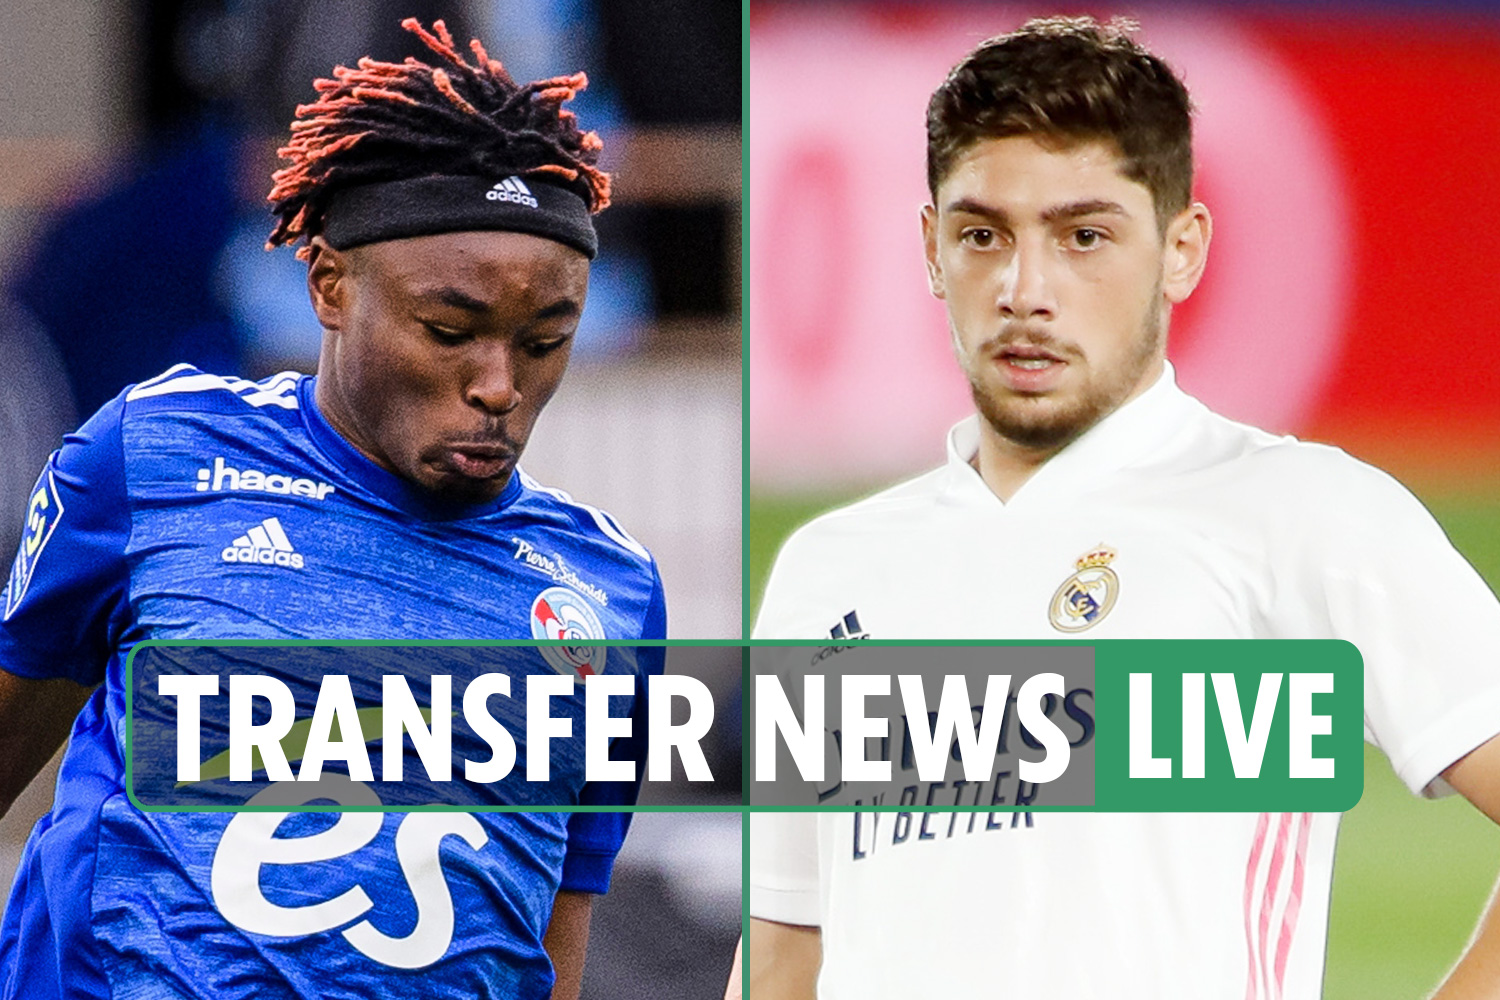 3pm Transfer news LIVE: Benrahma to West Ham COMPLETE, Wilson joins Cardiff on loan, Rodon to Spurs DONE DEAL